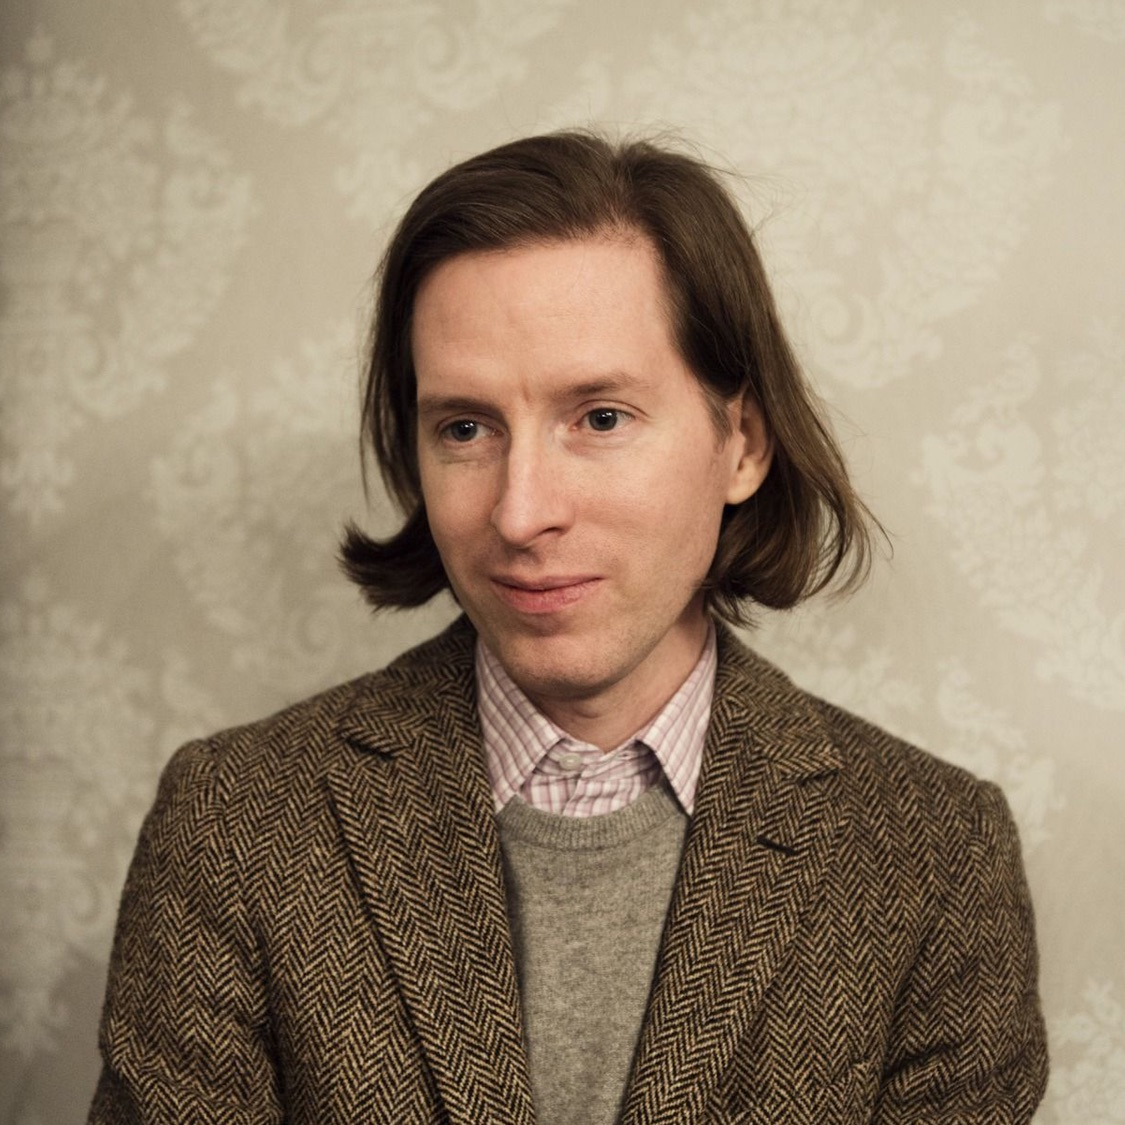 Wes Anderson's Filmography